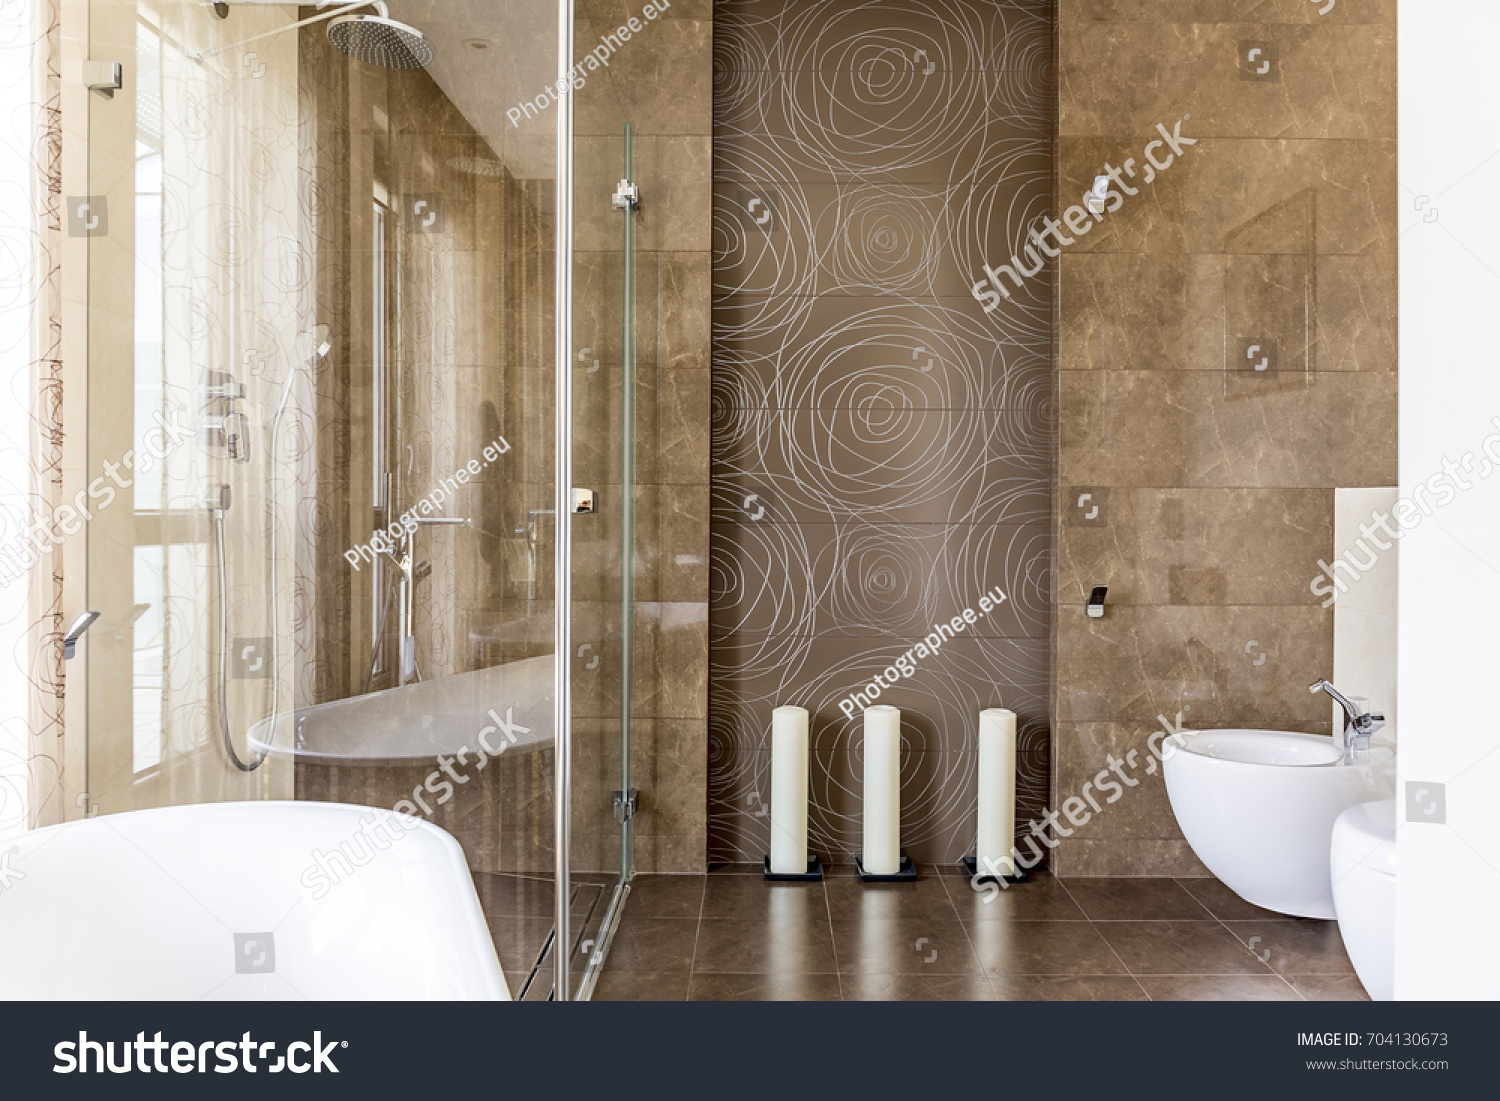 Fancy Bathroom Brown Decorative Tiles Abstract Stock Photo (Royalty ...